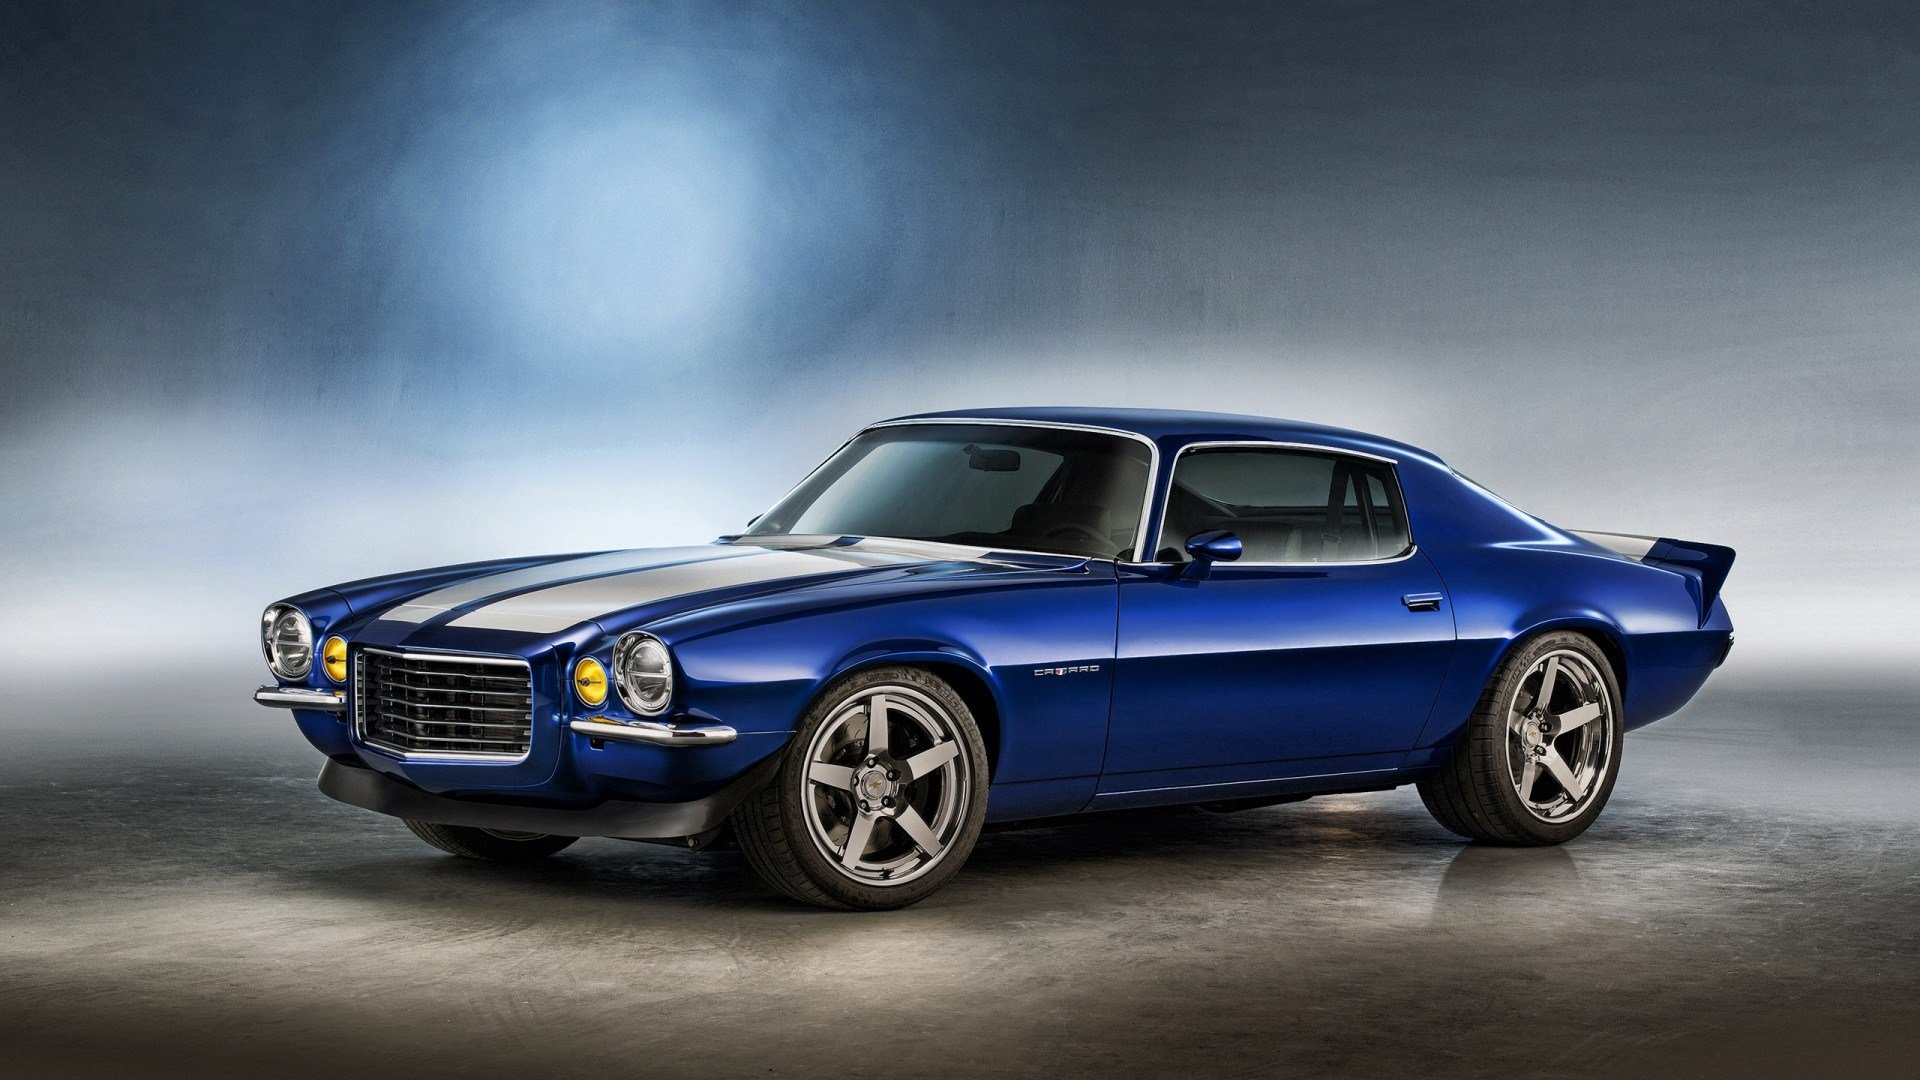 New 1970 Chevrolet Camaro Rs Wallpaper Hd Car Wallpapers On This Month